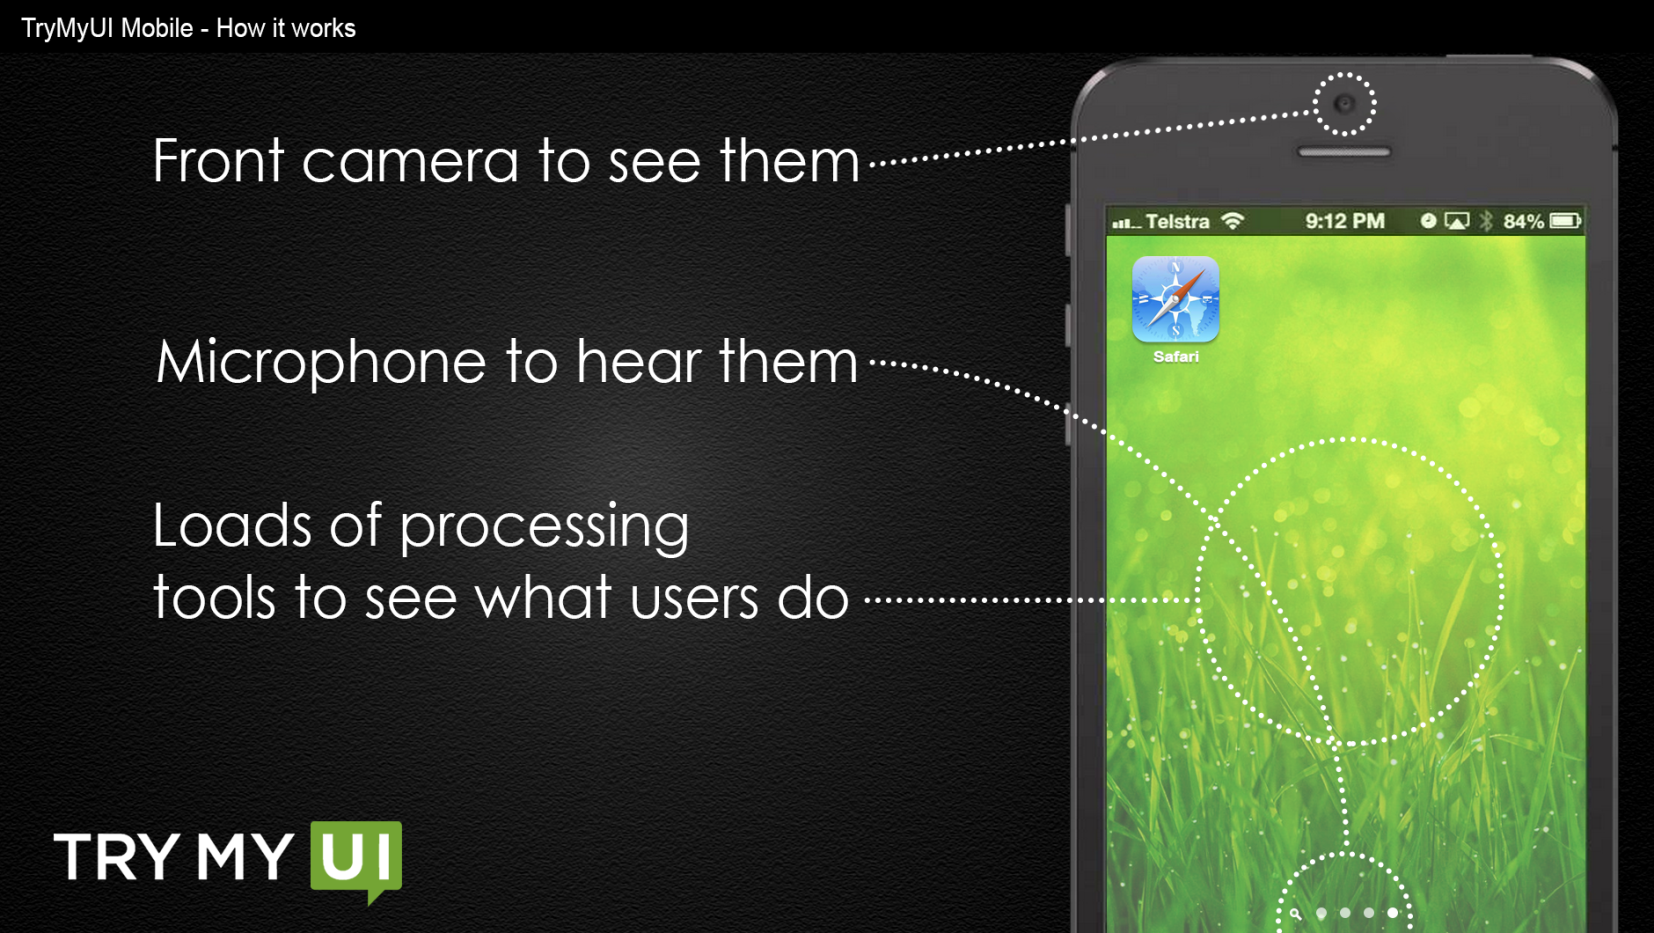 Main features of TryMyUI Mobile testing app